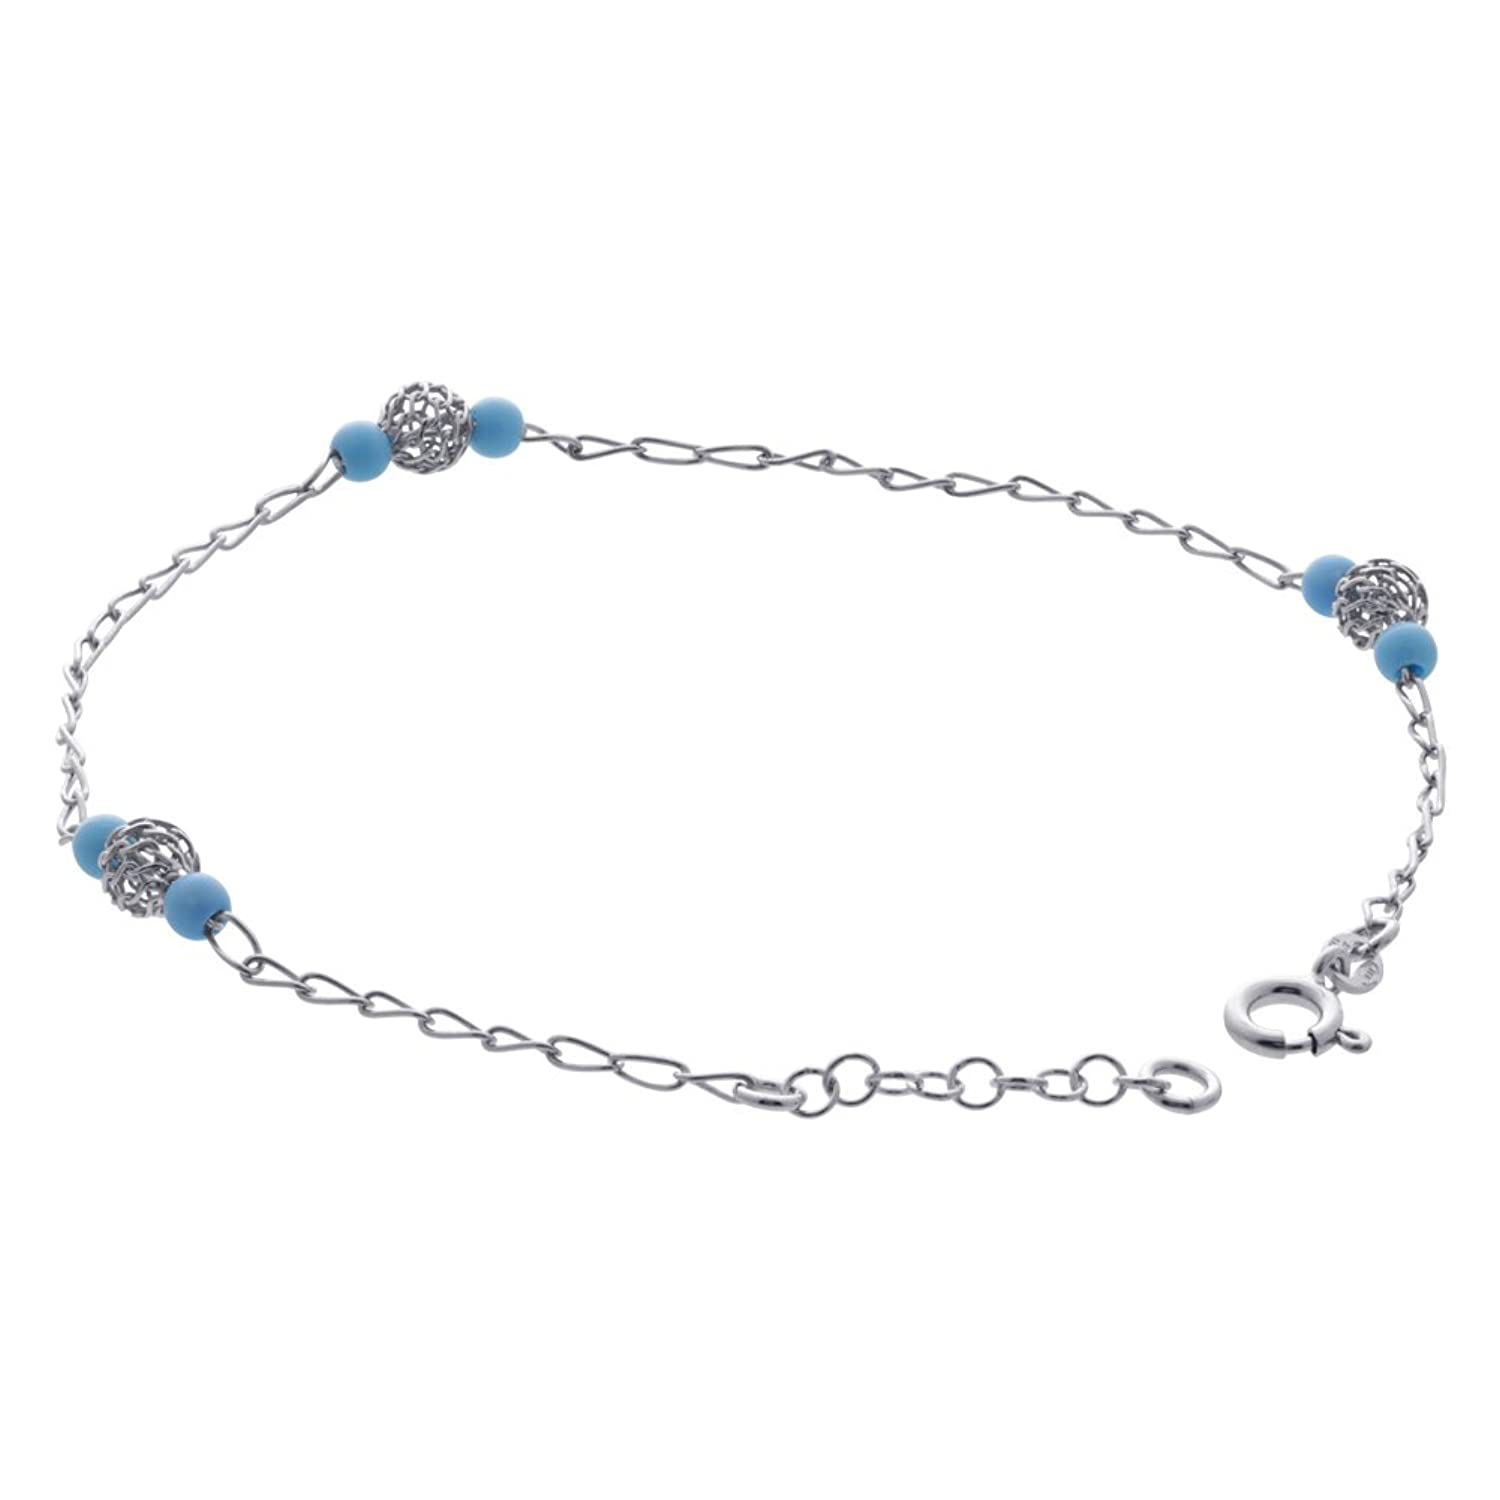 Gem Avenue Sterling Silver 4mm Turquoise Bead Chain Ankle Bracelet 9.5 inch with Extensions